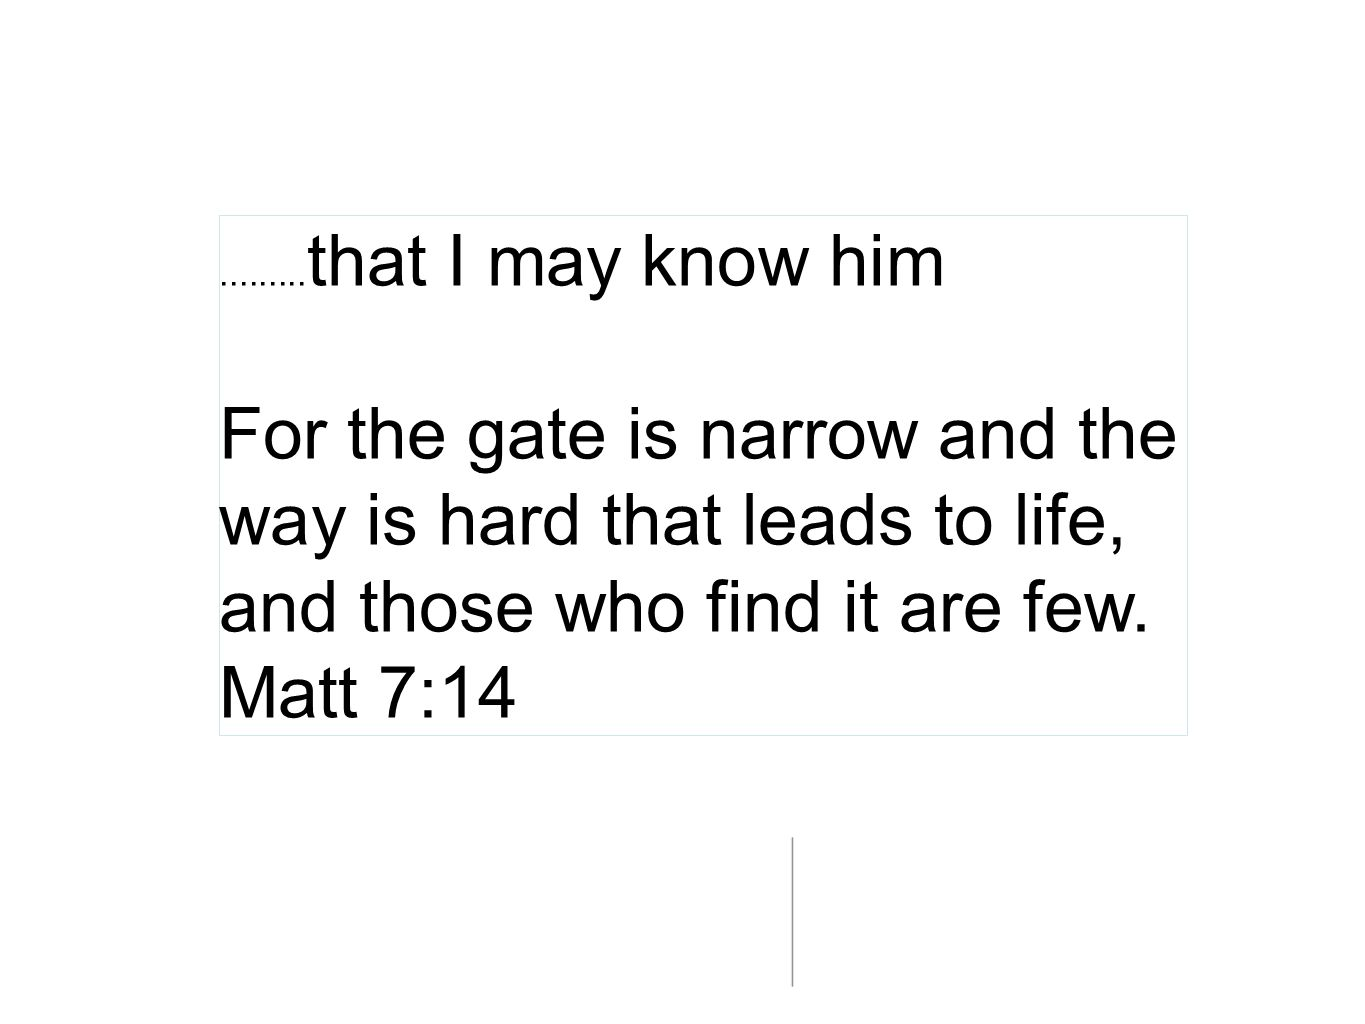 ......... that I may know him For the gate is narrow and the way is hard that leads to life, and those who find it are few. Matt 7:14